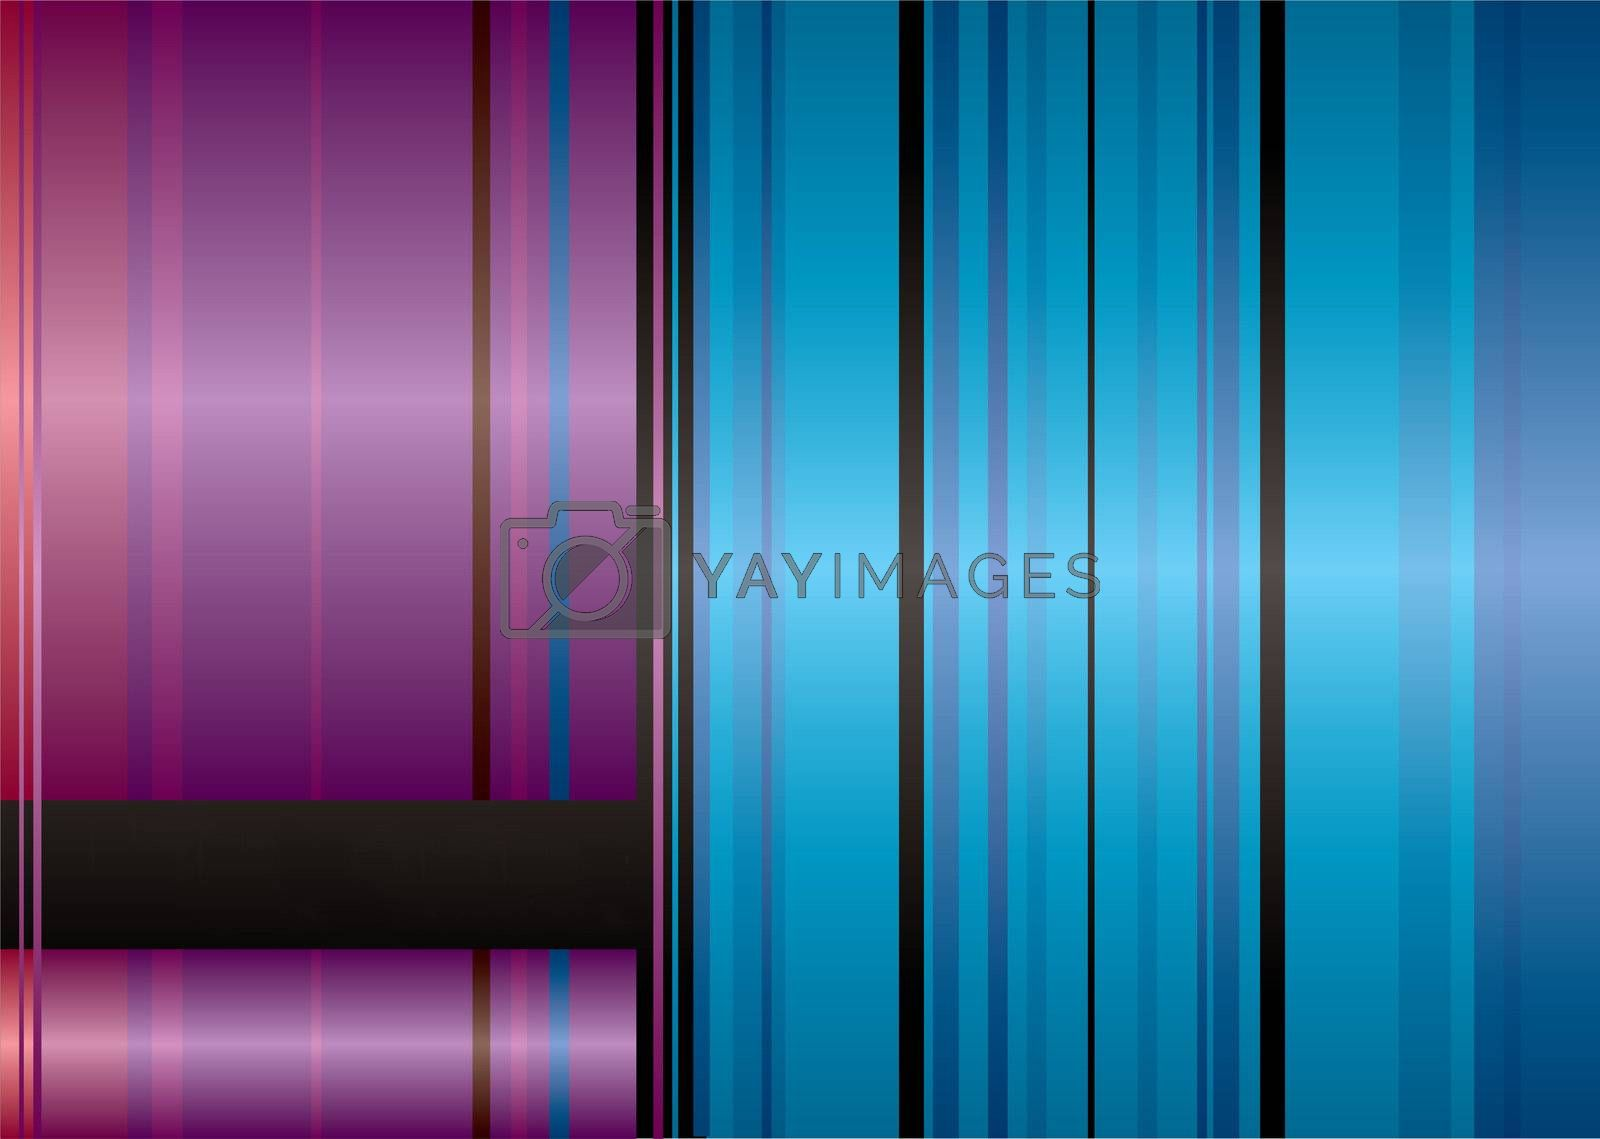 abstract red and blue ribbon background with room to add your text